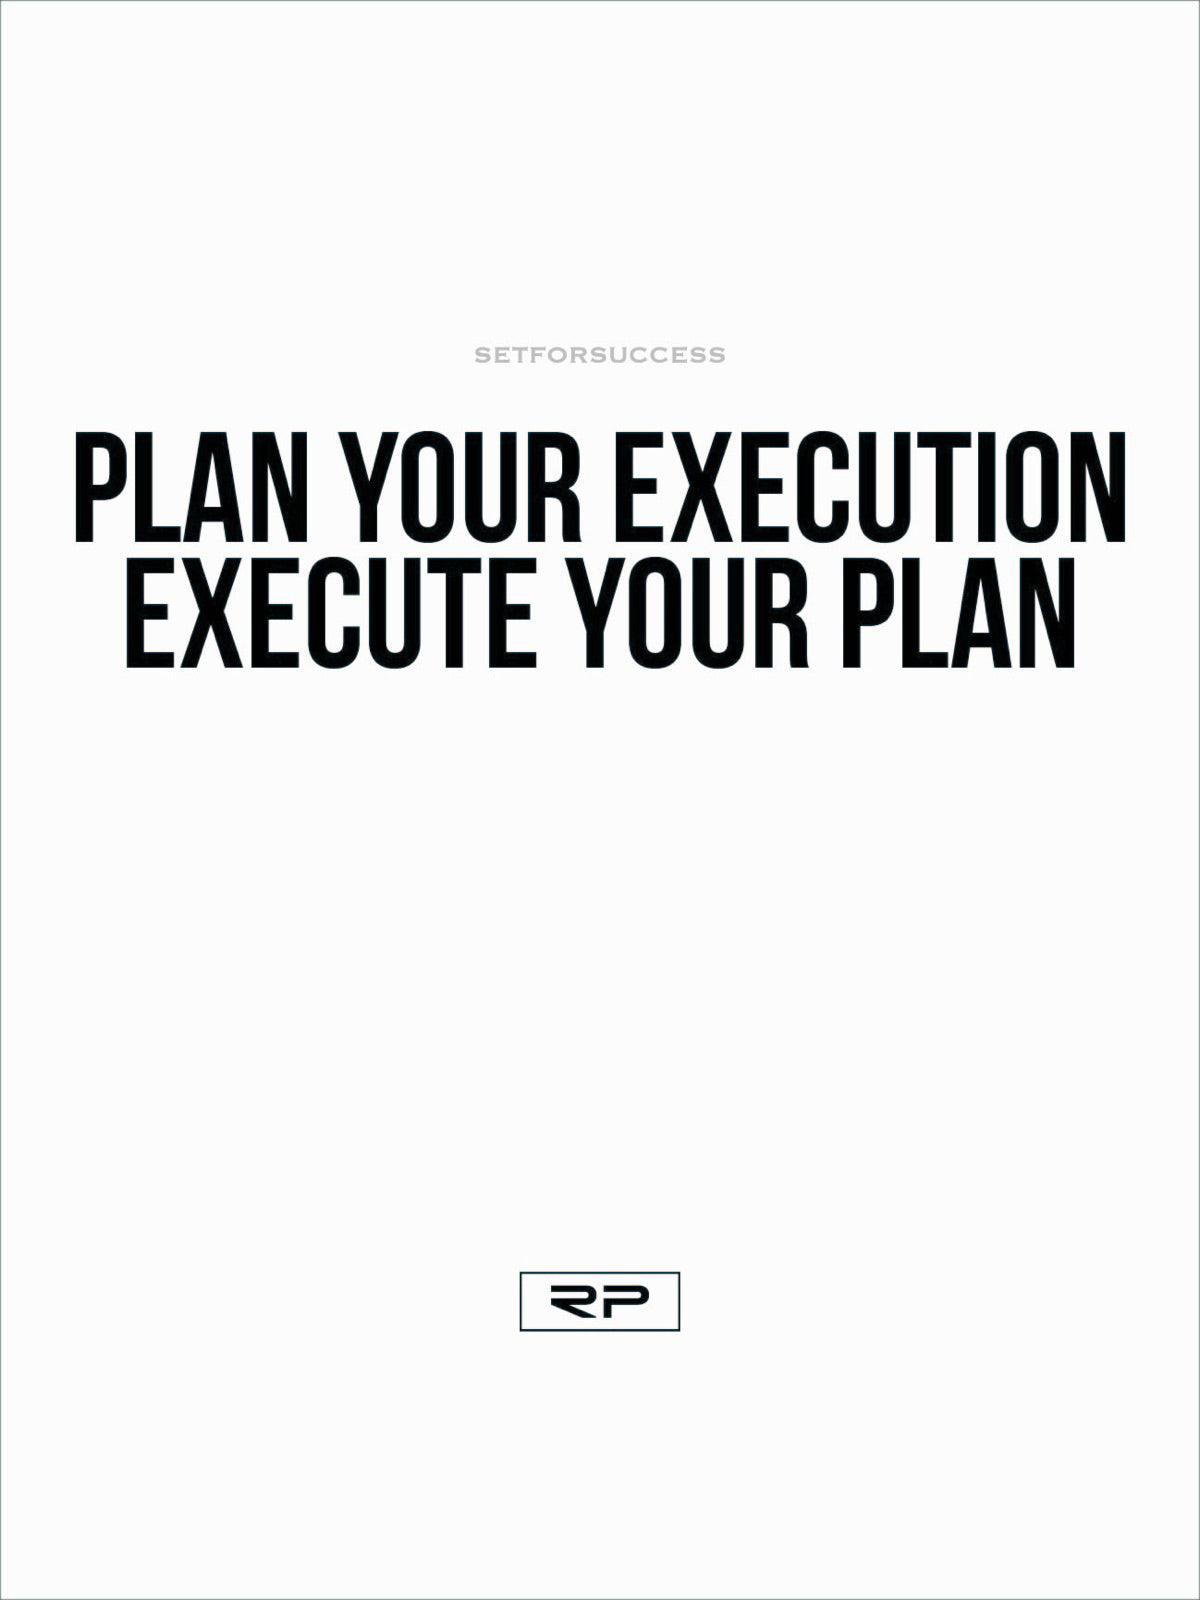 Plan Your Execution 18x24 Poster Randall Pich